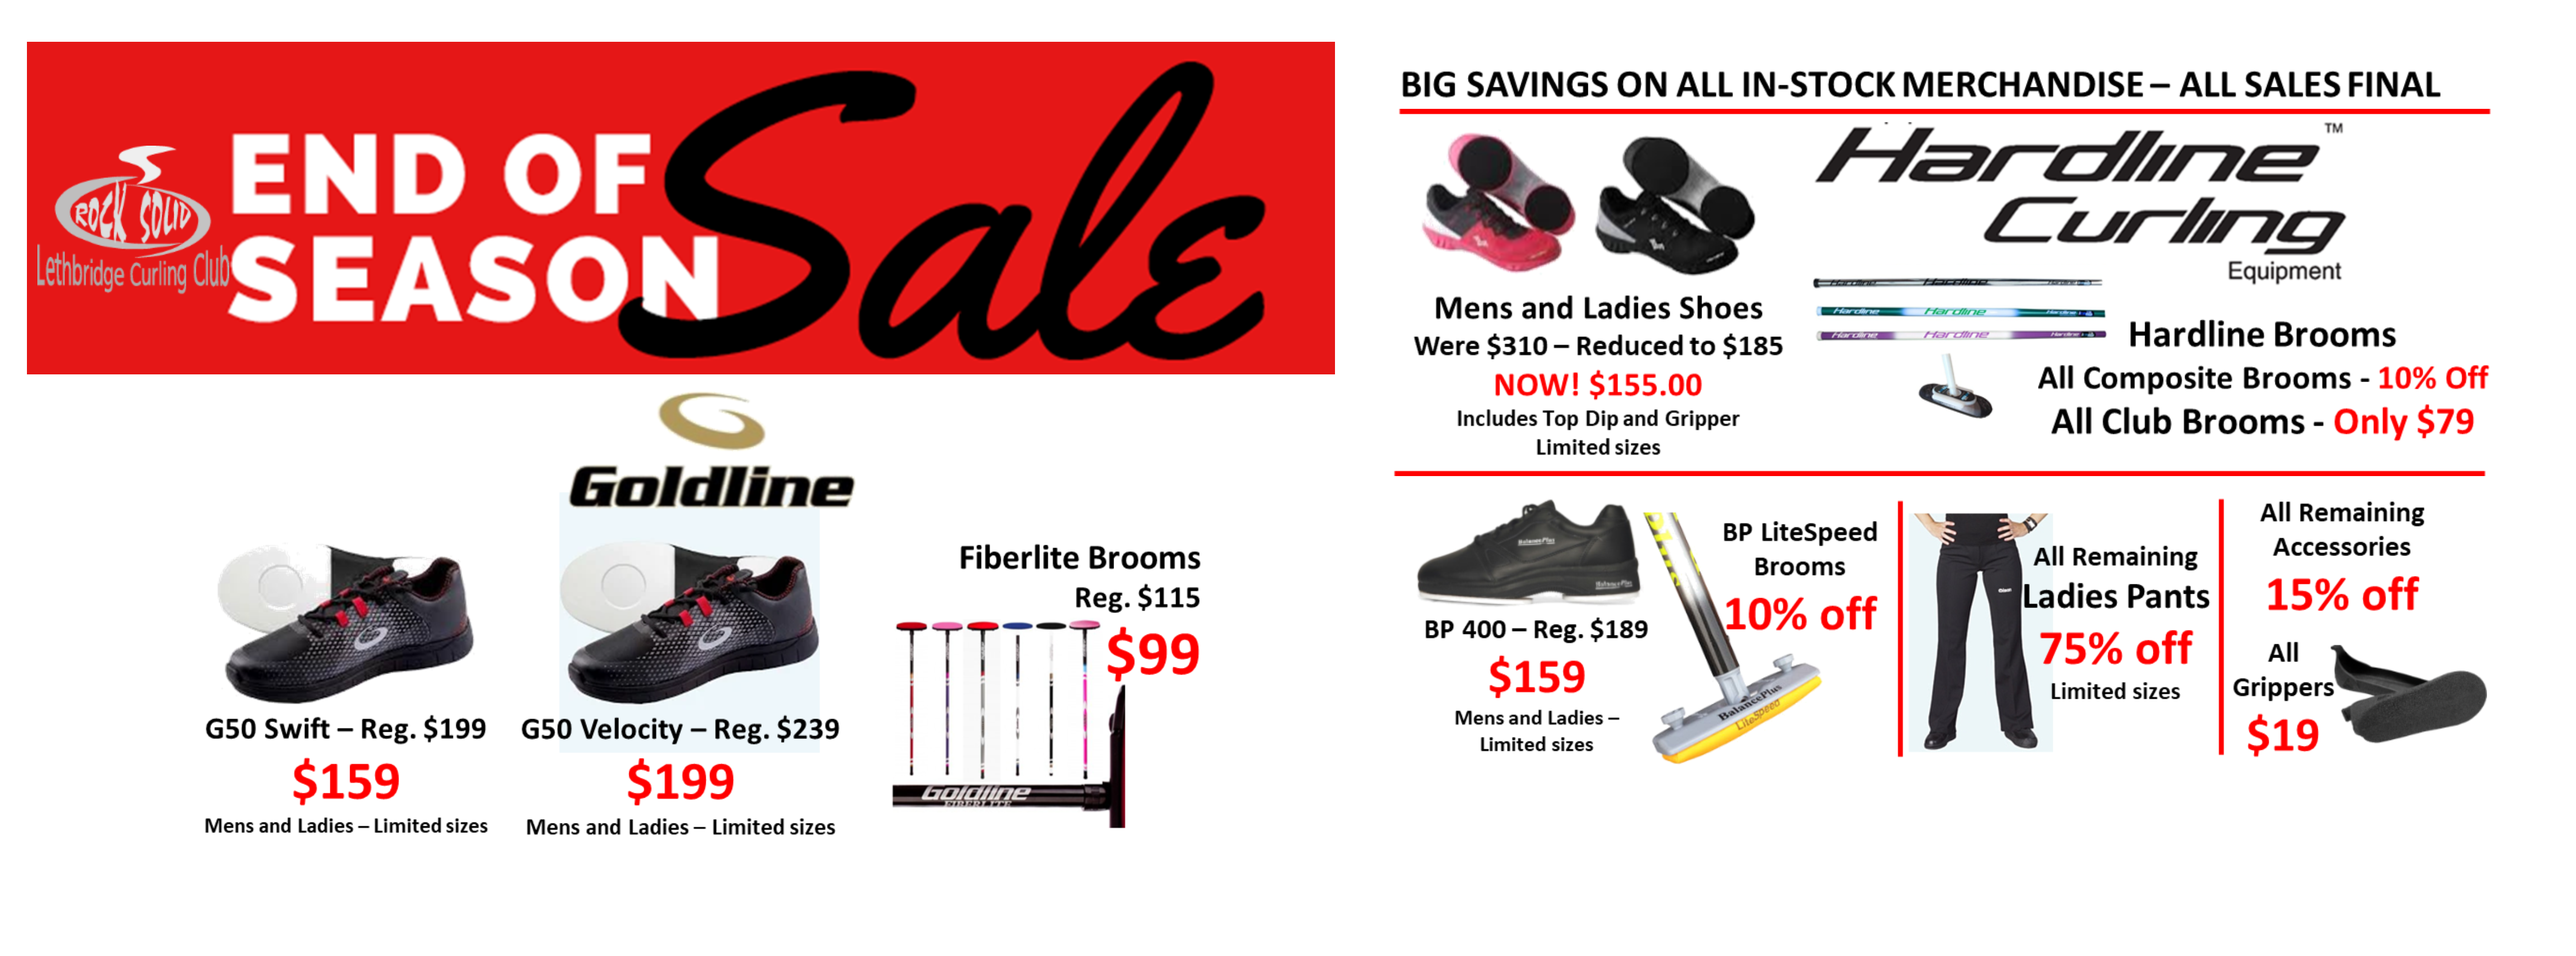 <div id=slideshow_title>END OF SEASON SALE ON NOW!</div> <br><div style='text-align: left; font-size: 18px;'>While Supplies Last - Some items limited quantities.</div>